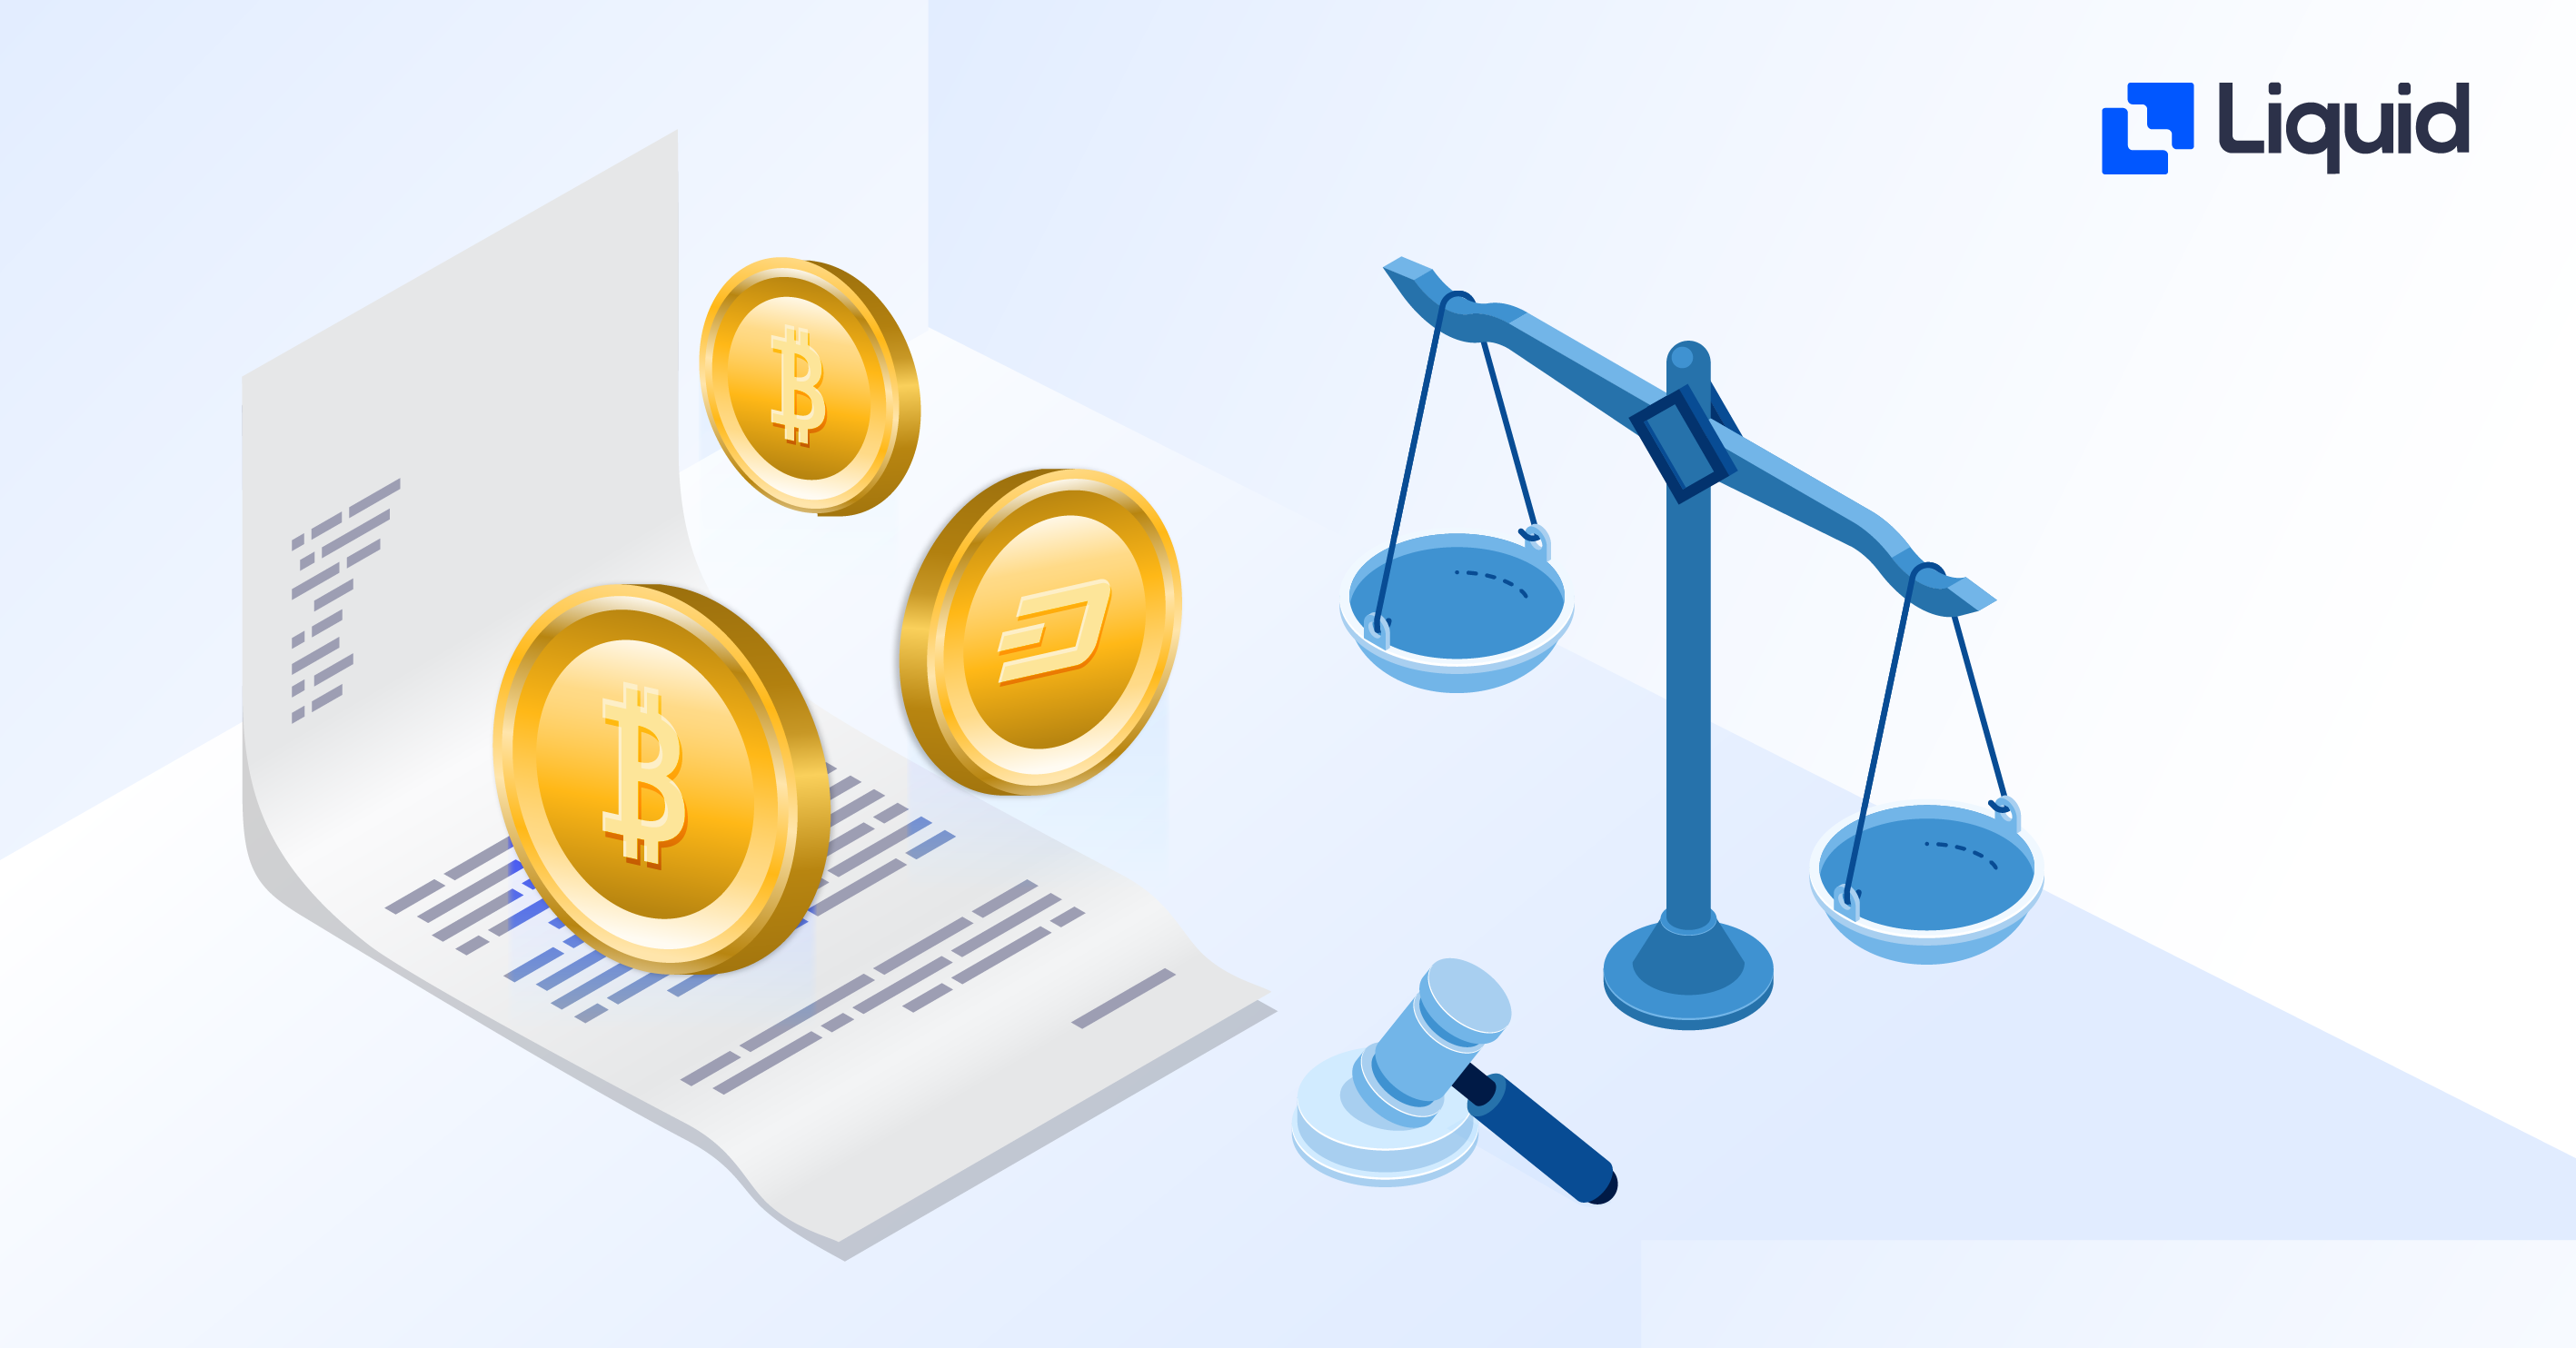 crypto exchanges regulations in crypto, safe crypto exchange